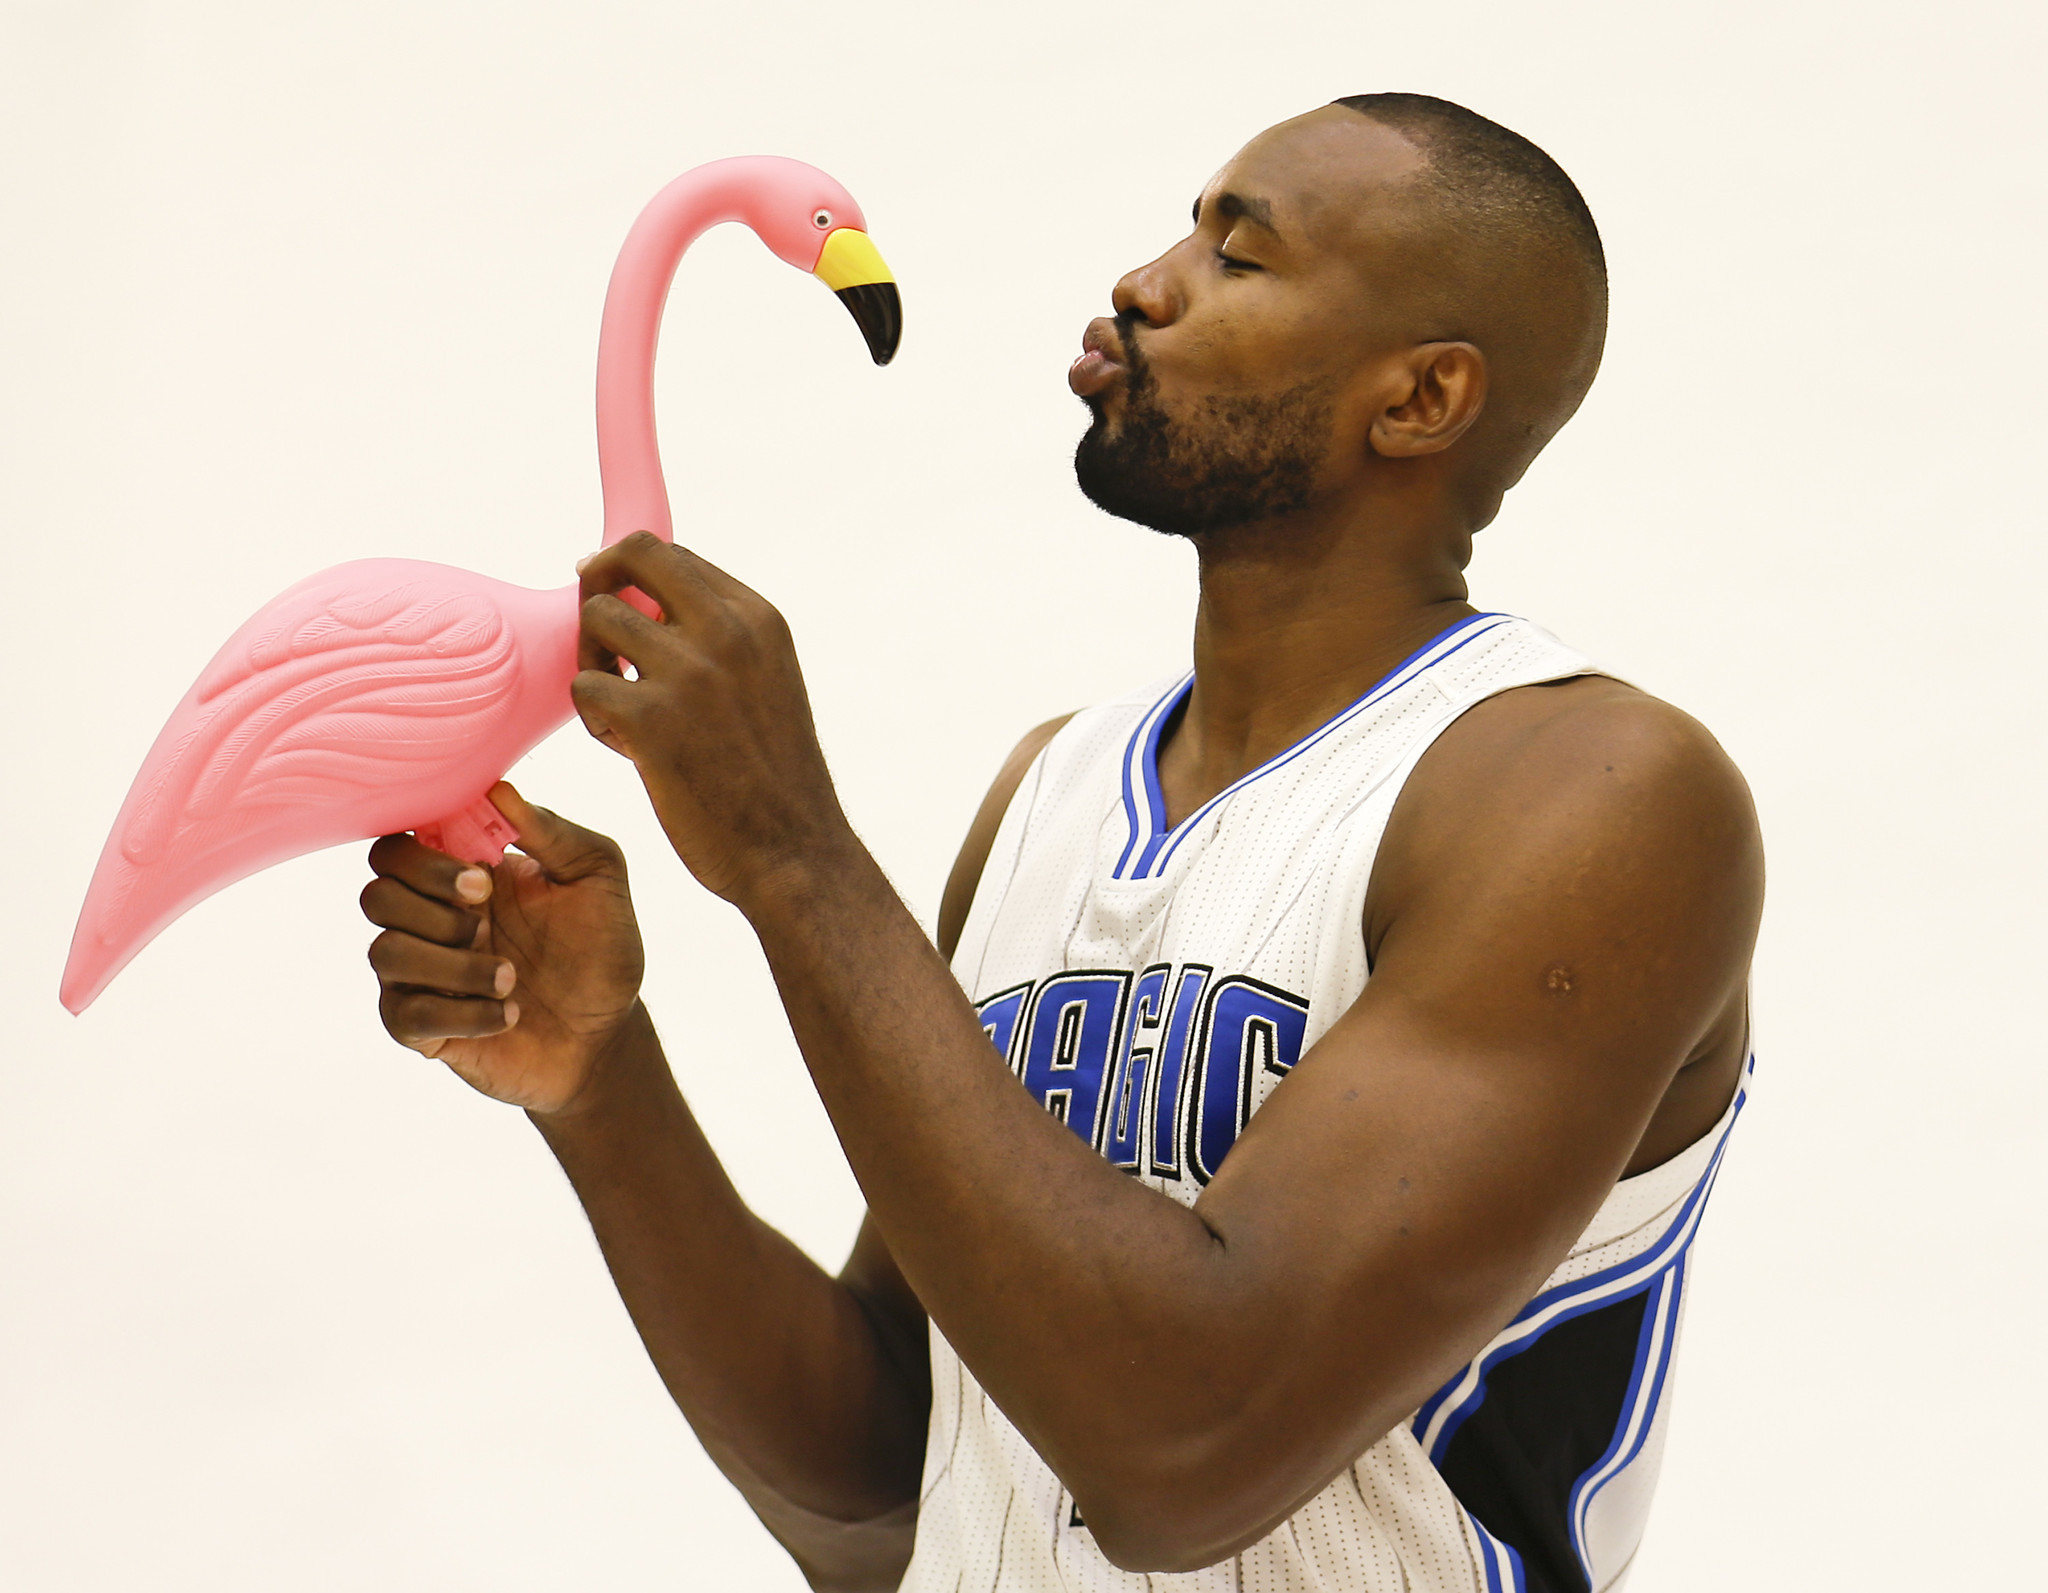 Os-can-magic-win-enough-to-keep-ibaka-20160928